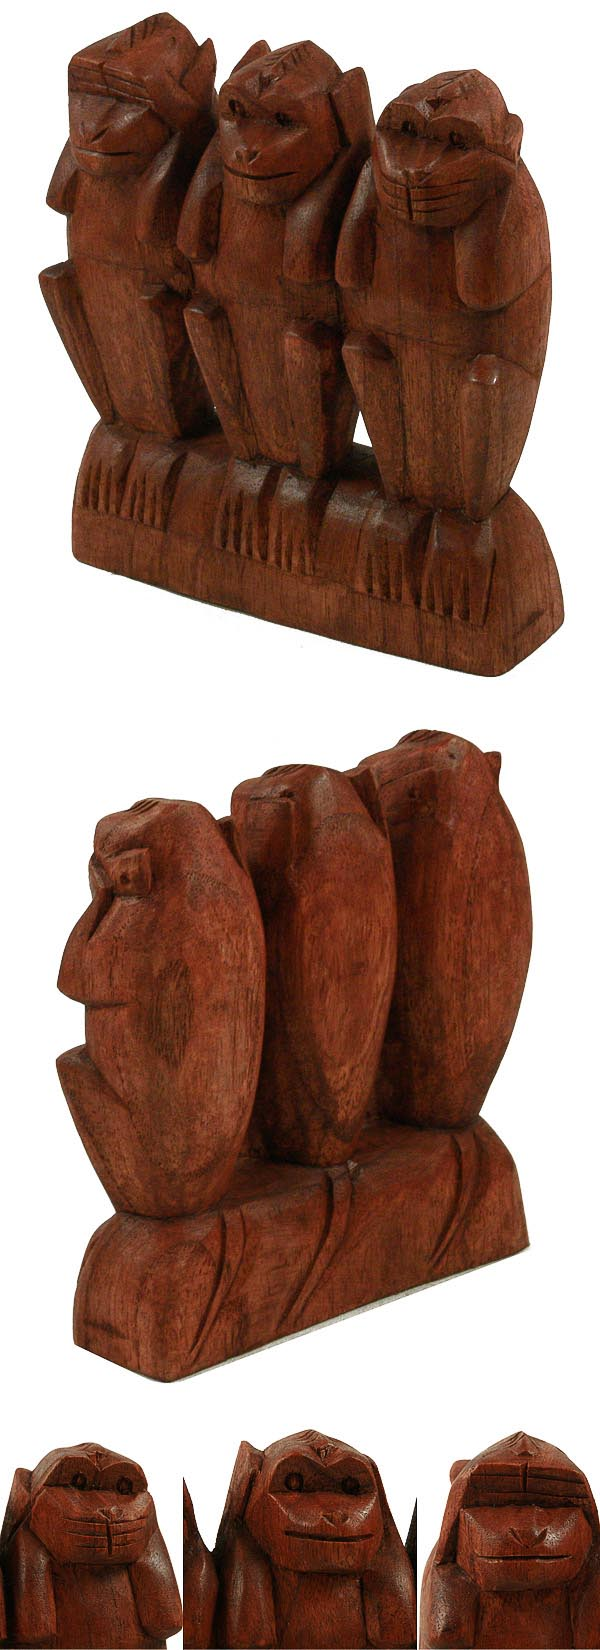 statuette les 3 singes de la sagesse acheter decoration. Black Bedroom Furniture Sets. Home Design Ideas